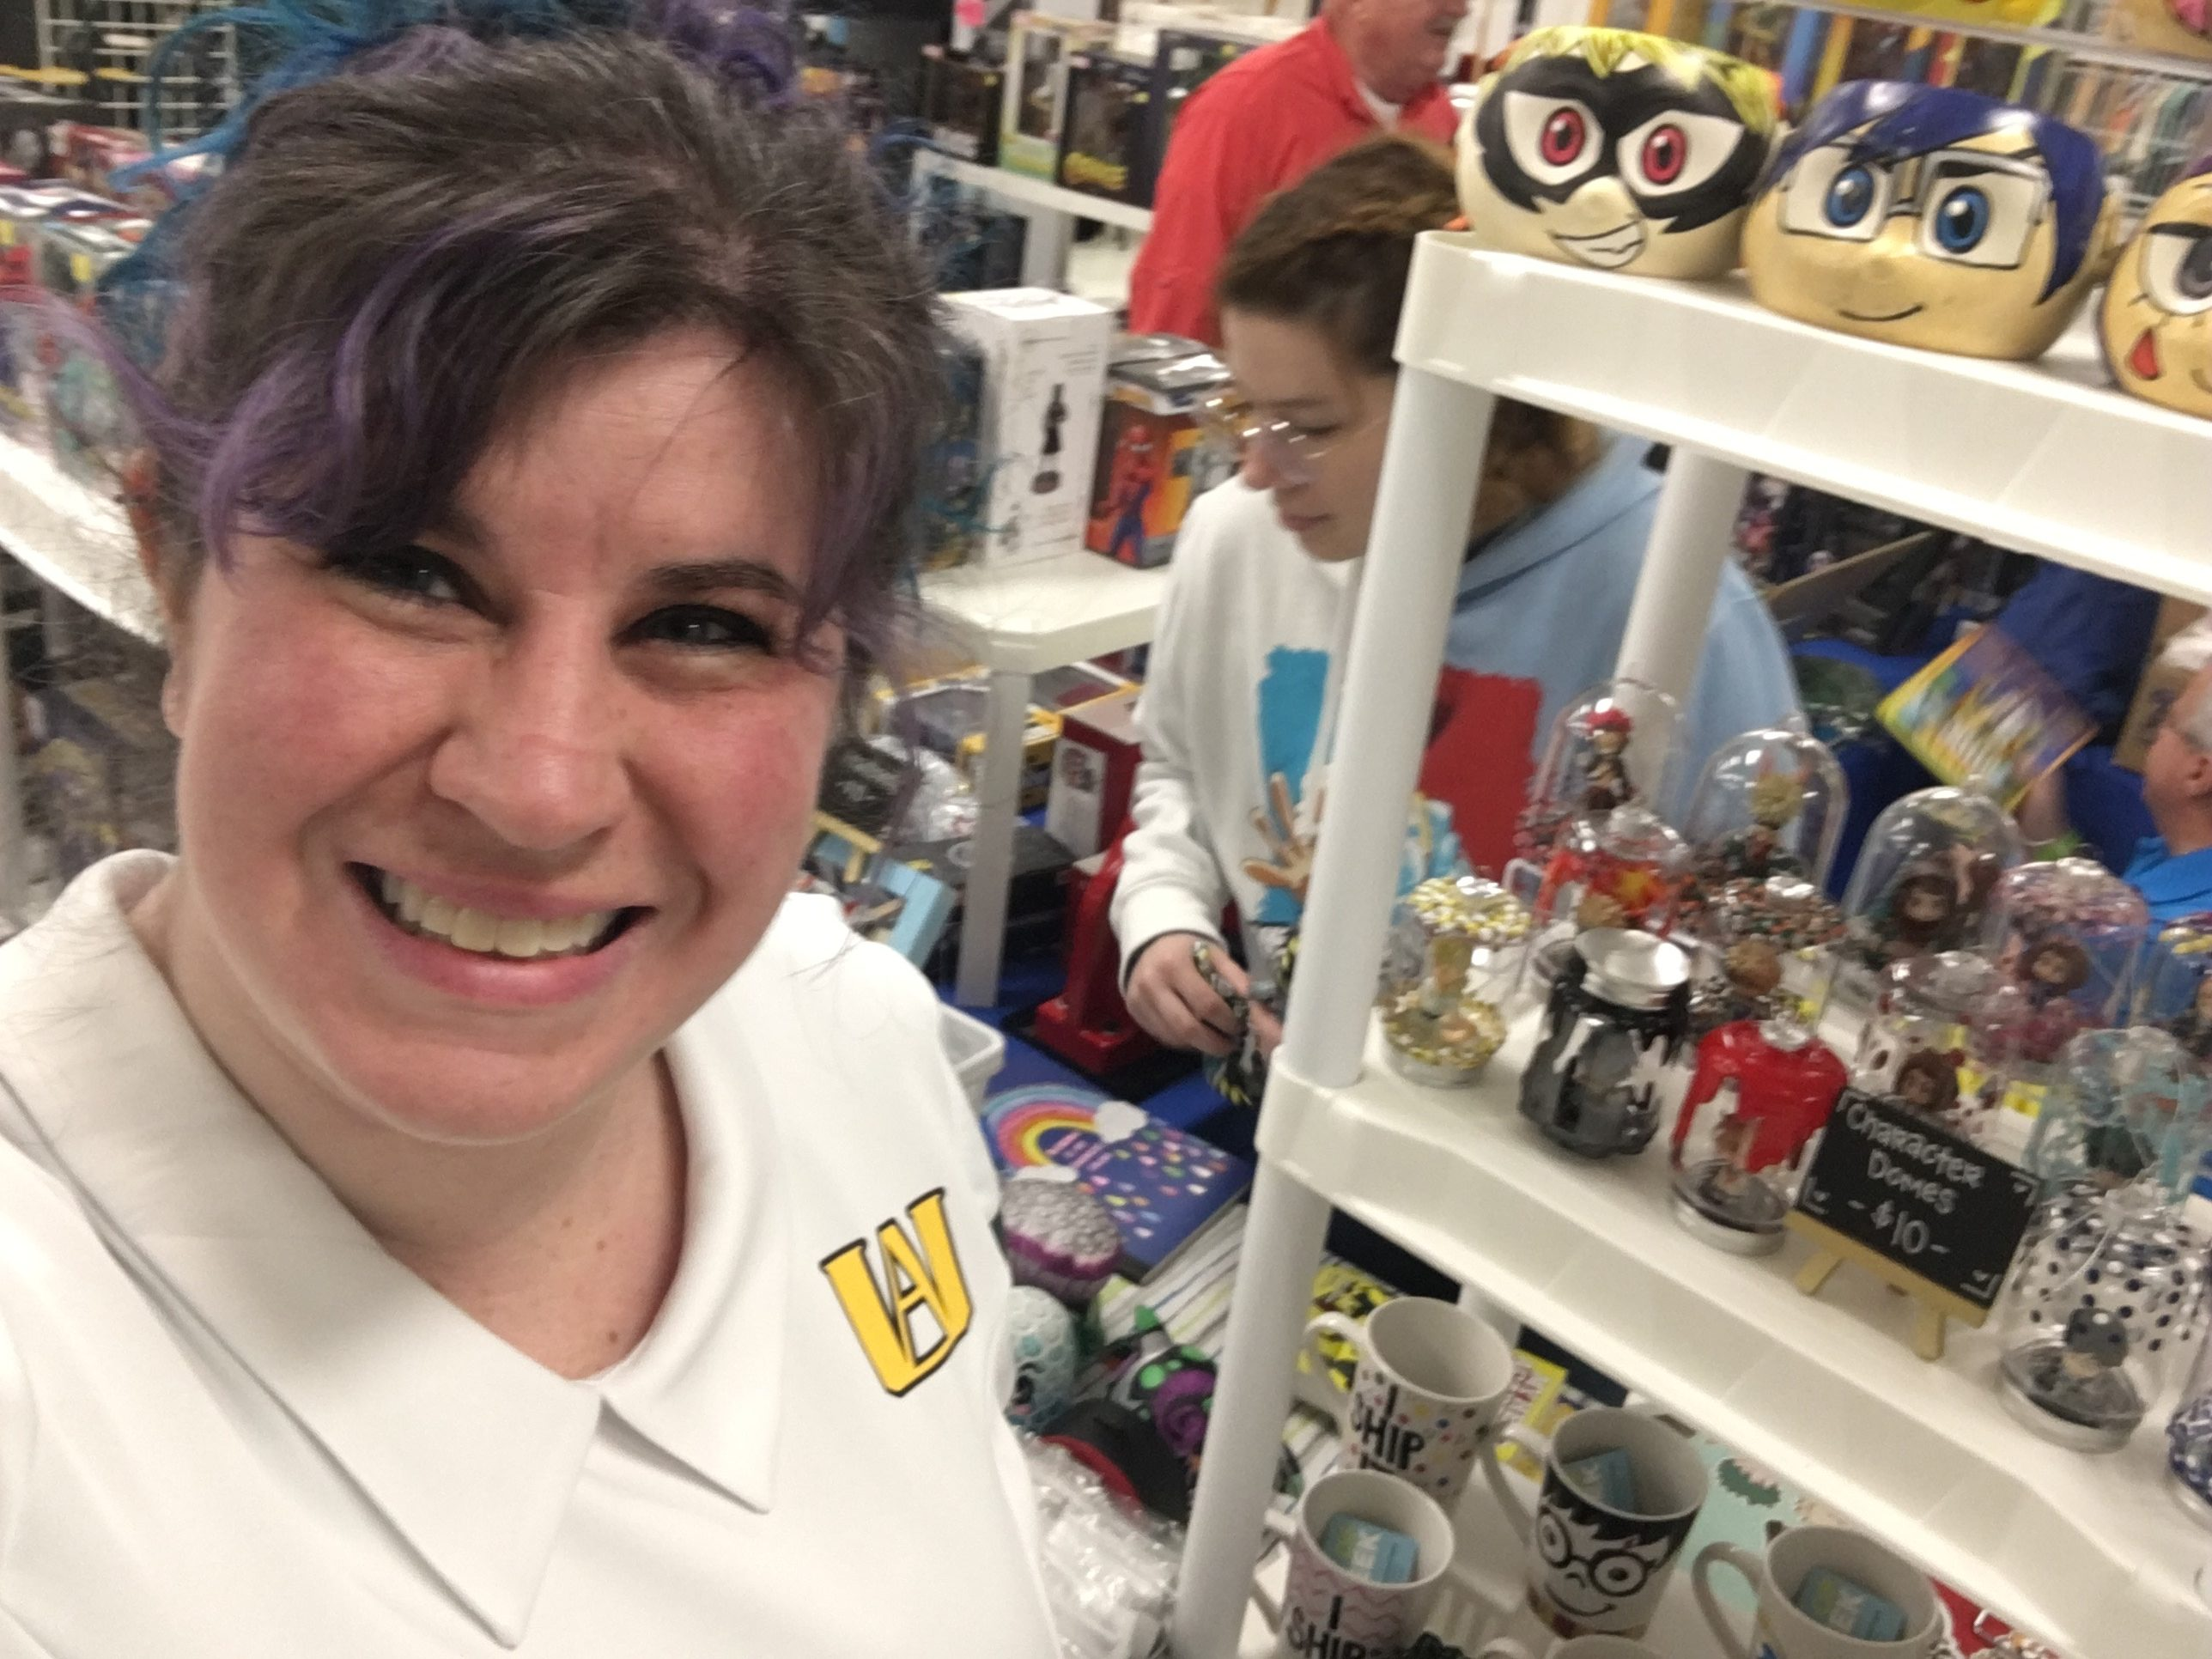 Geek Professional: Local Artist Turns Hobby into a Business